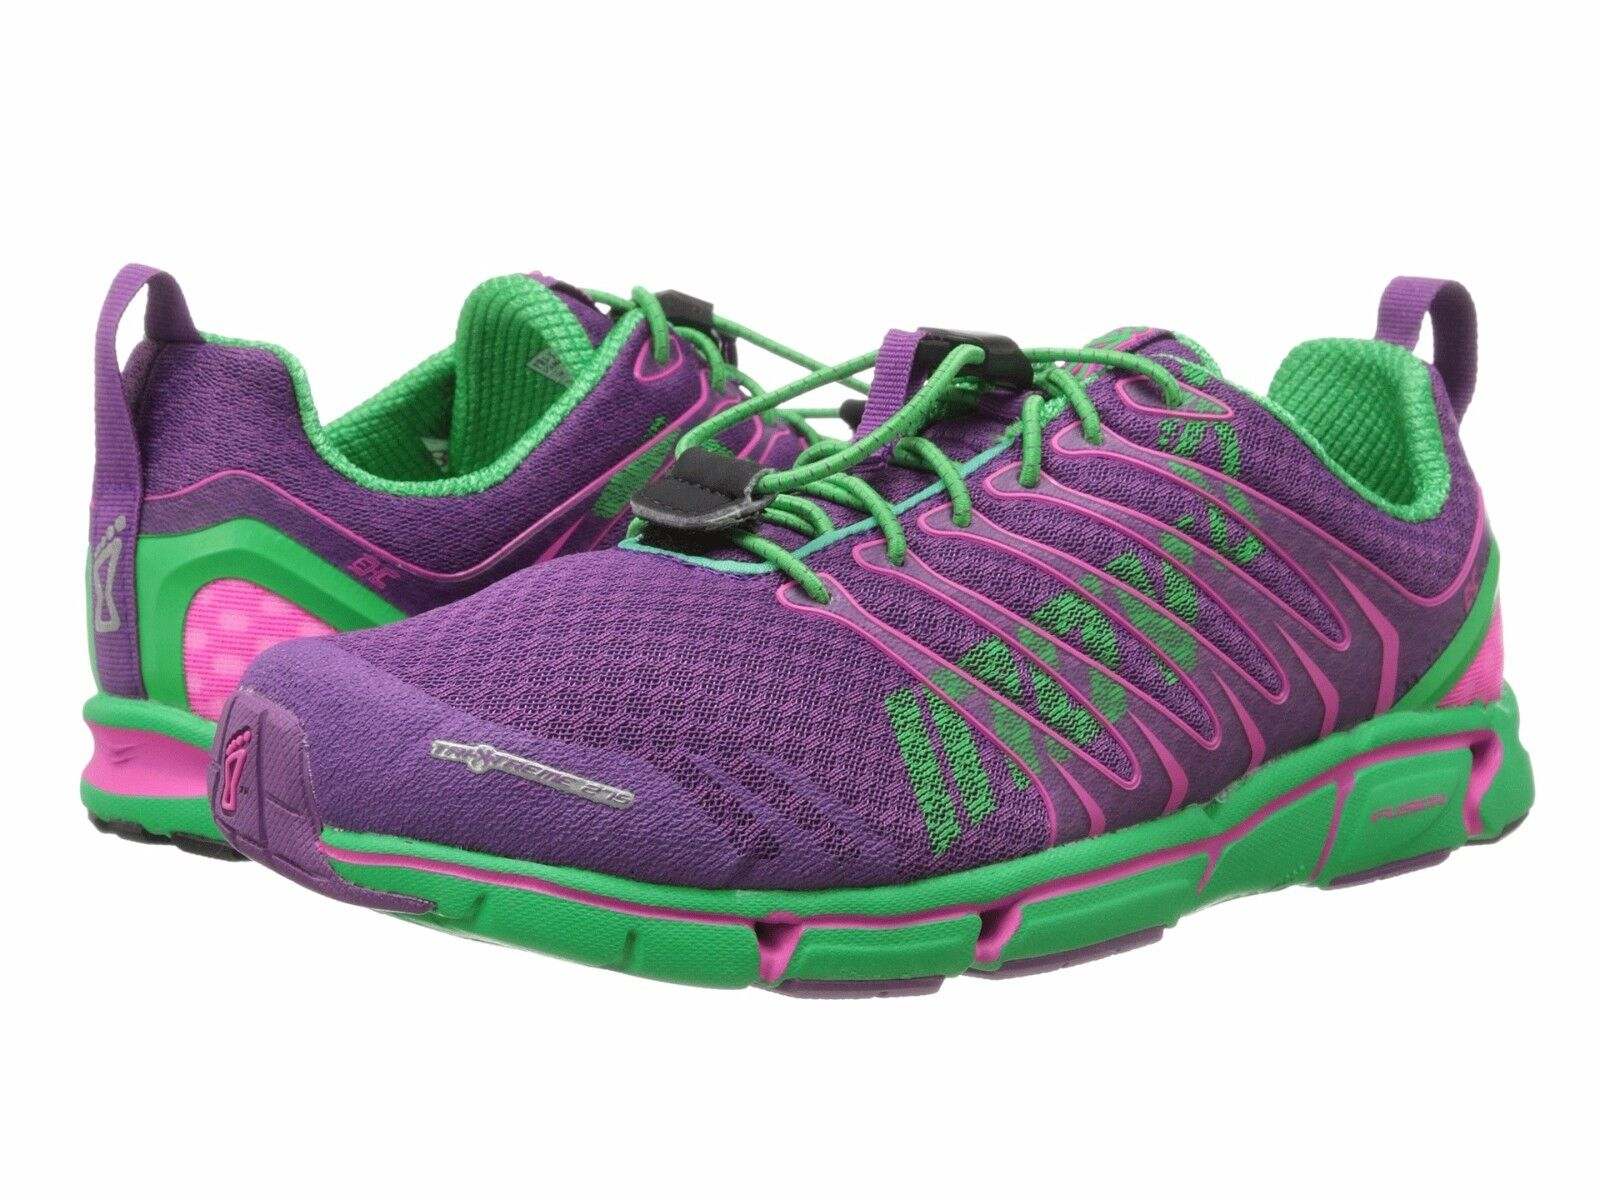 New Women's inov-8 Tri-X-Treme 275 Athletic Sneaker LIGHT WEIGHT shoes SZ 10